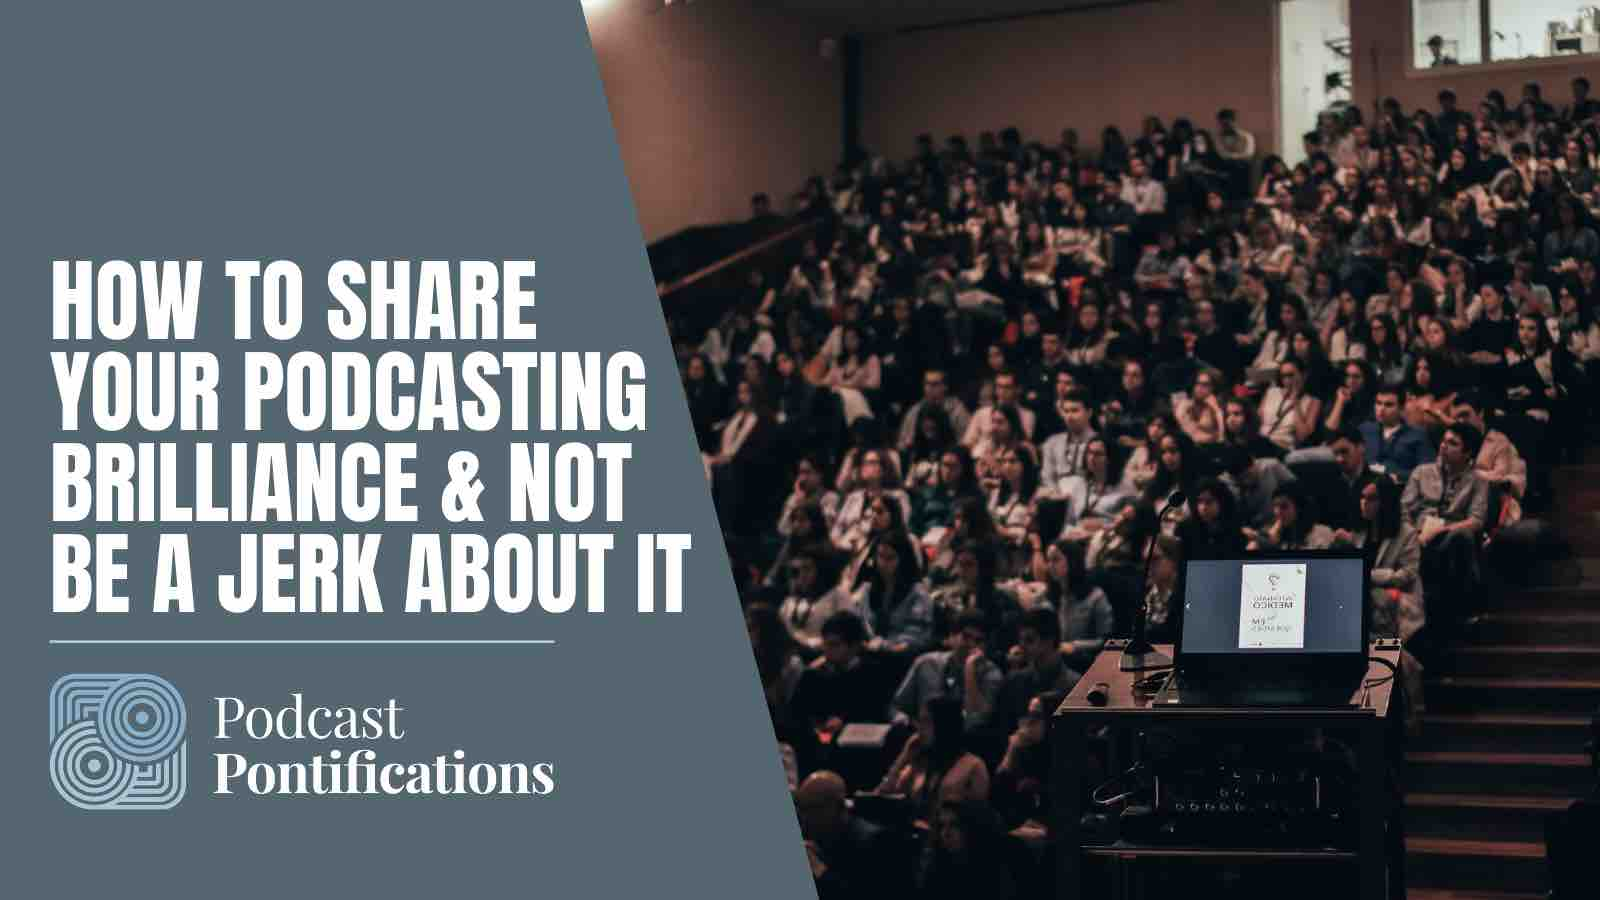 How To Share Your Podcasting Brilliance & Not Be A Jerk About It